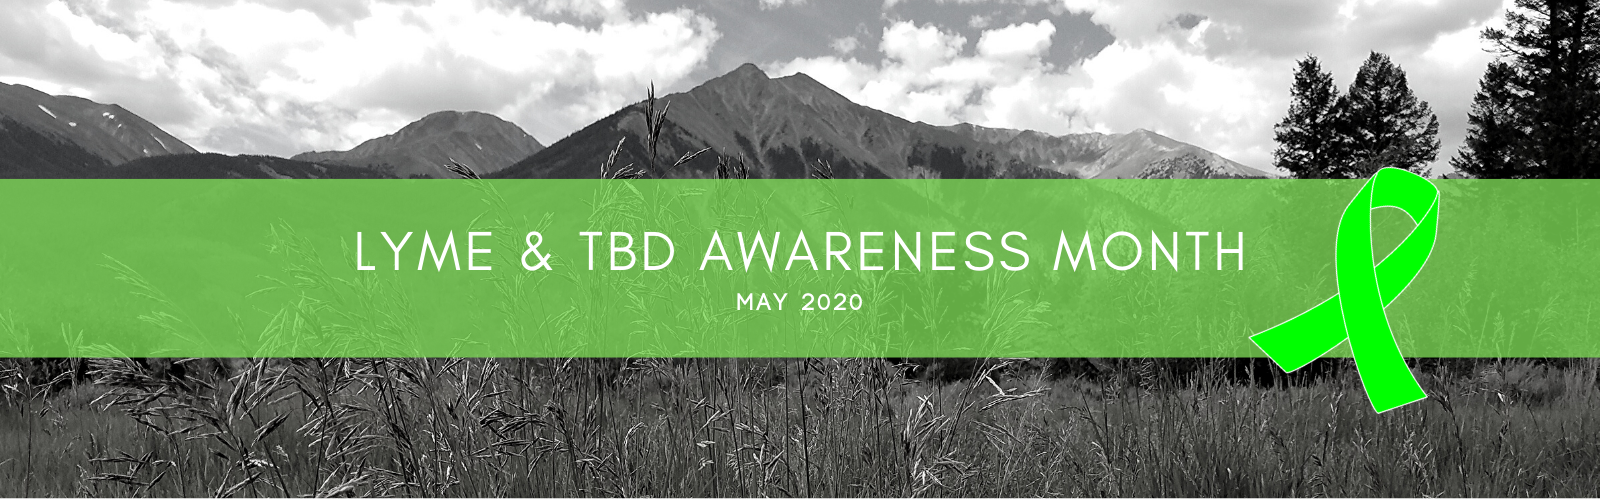 May Lyme & TBD Awareness Month